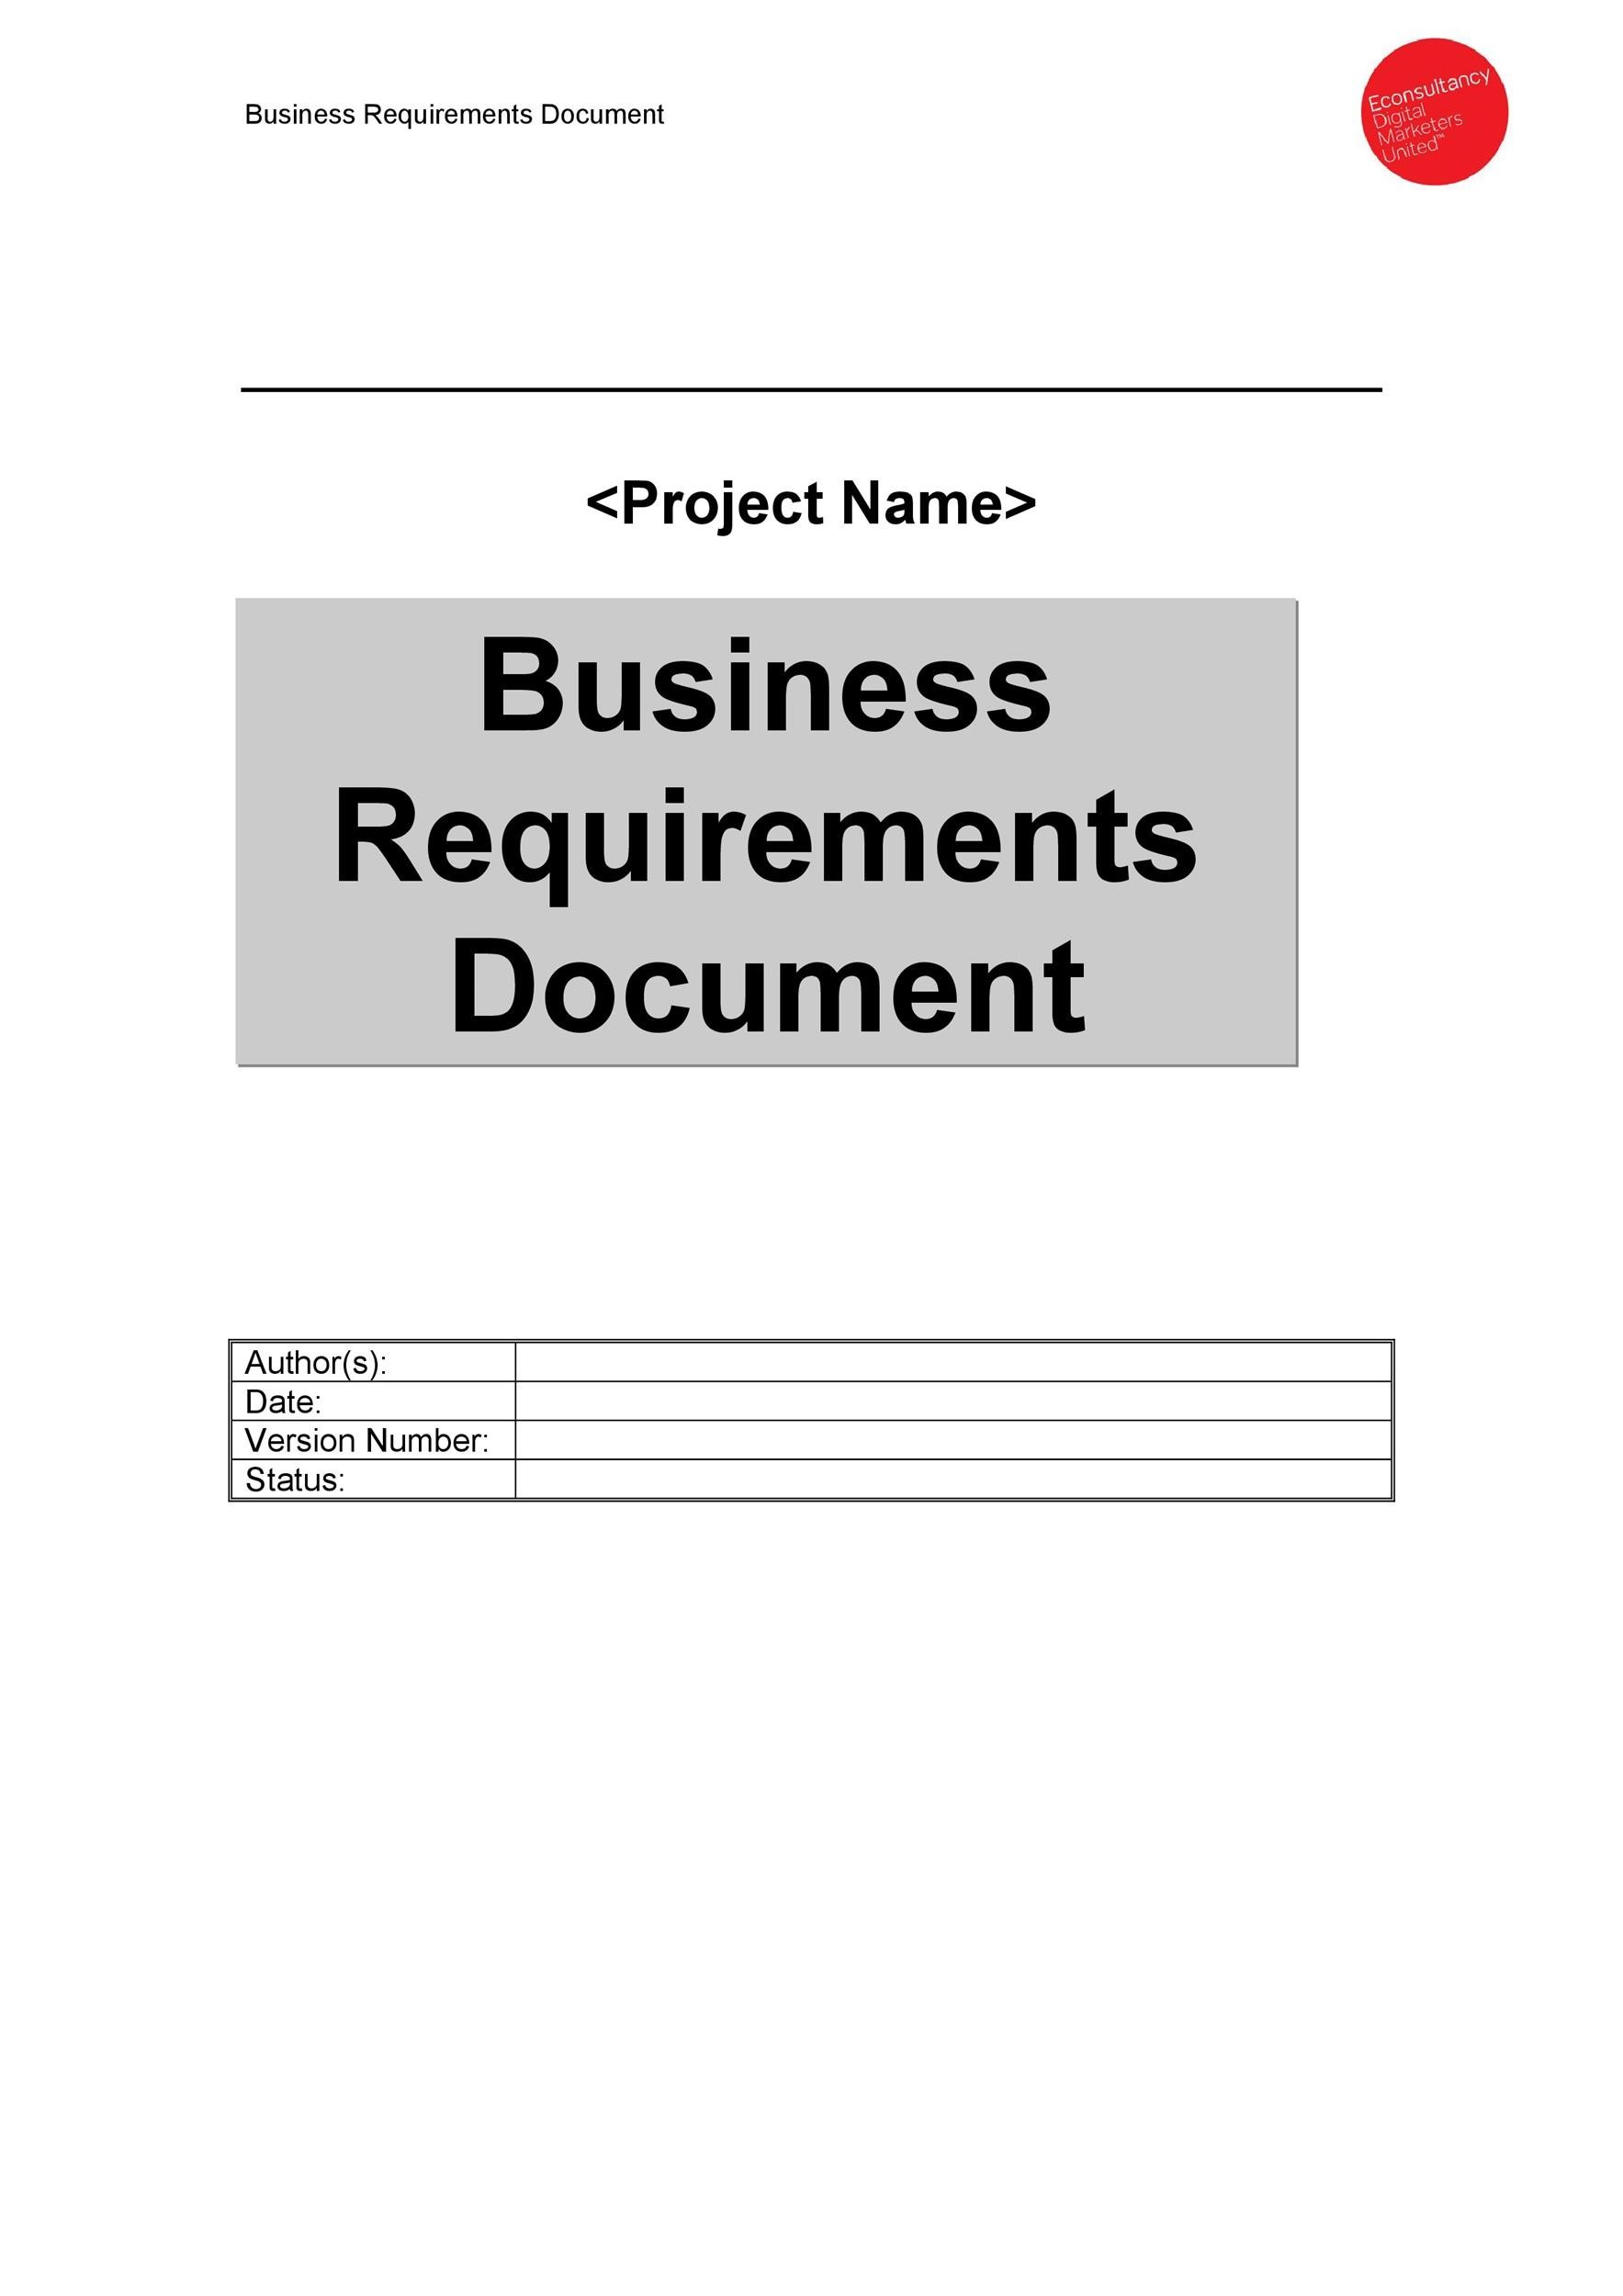 40 simple business requirements document templates template lab free business requirements document template 19 flashek Choice Image